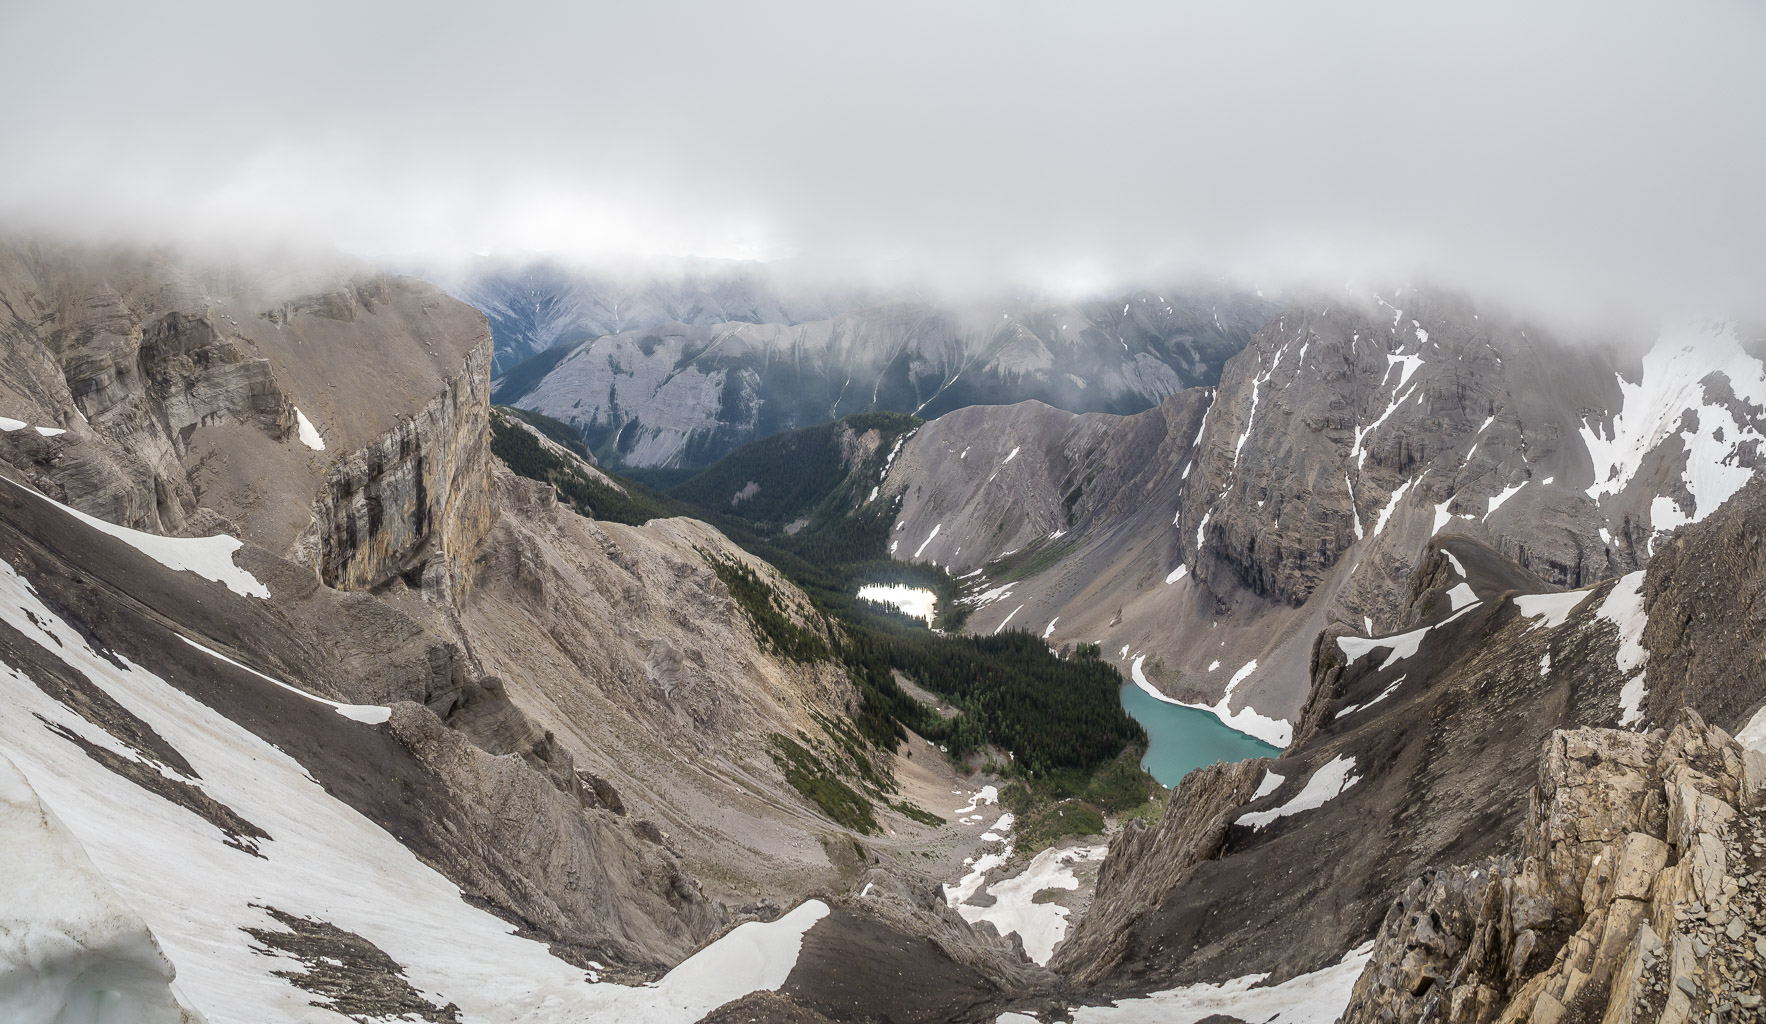 Entering the clouds, looking over the two lakes. The one at left is as bright as a mirror, reflecting the morning sun.